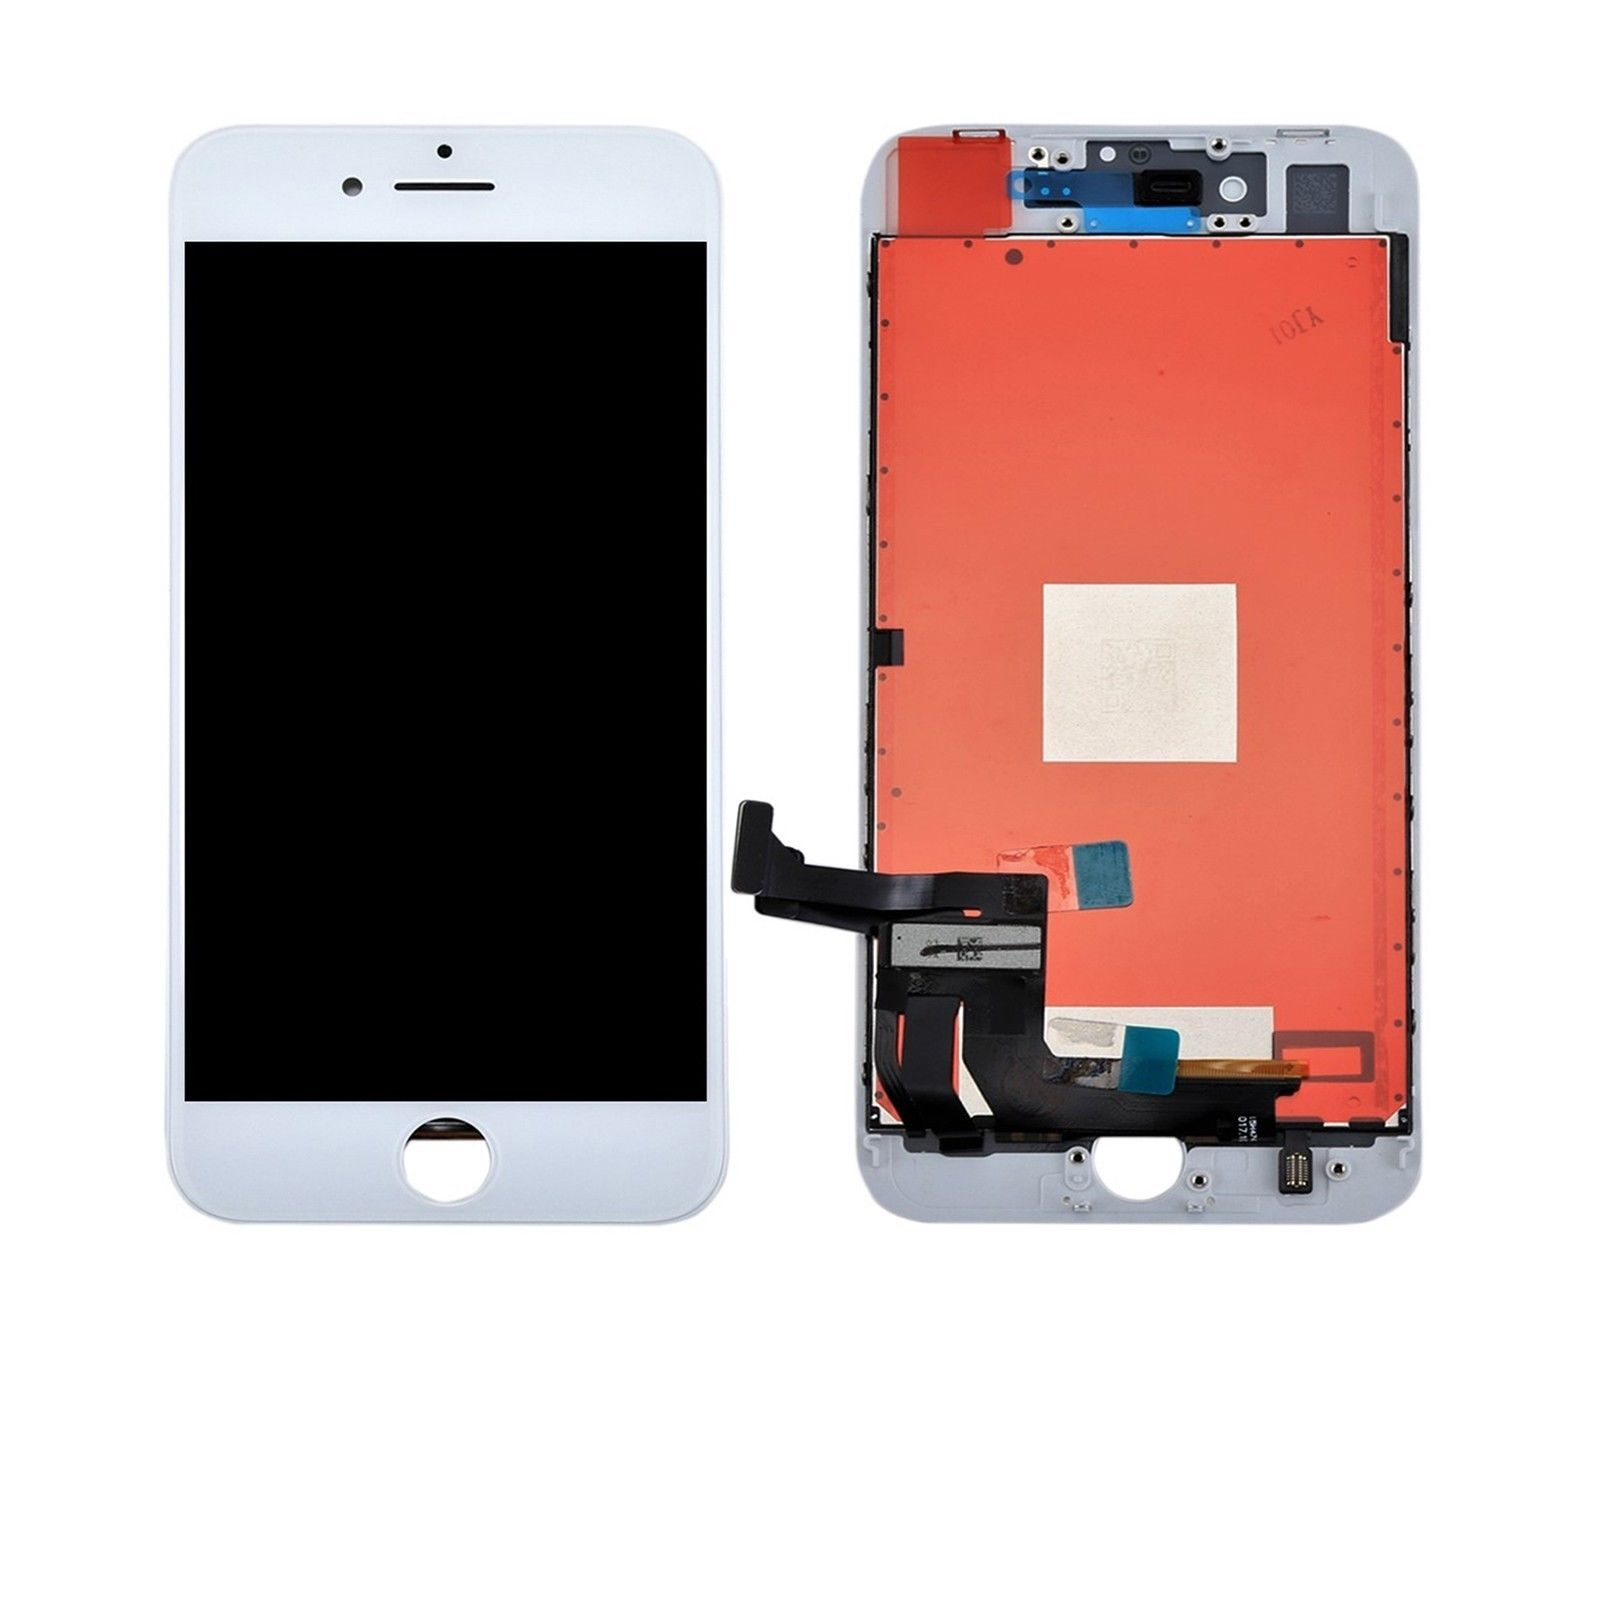 Touch screen lcd display frame bianco per apple iphone 8 plus modello A1864 A1897 + biadesivo